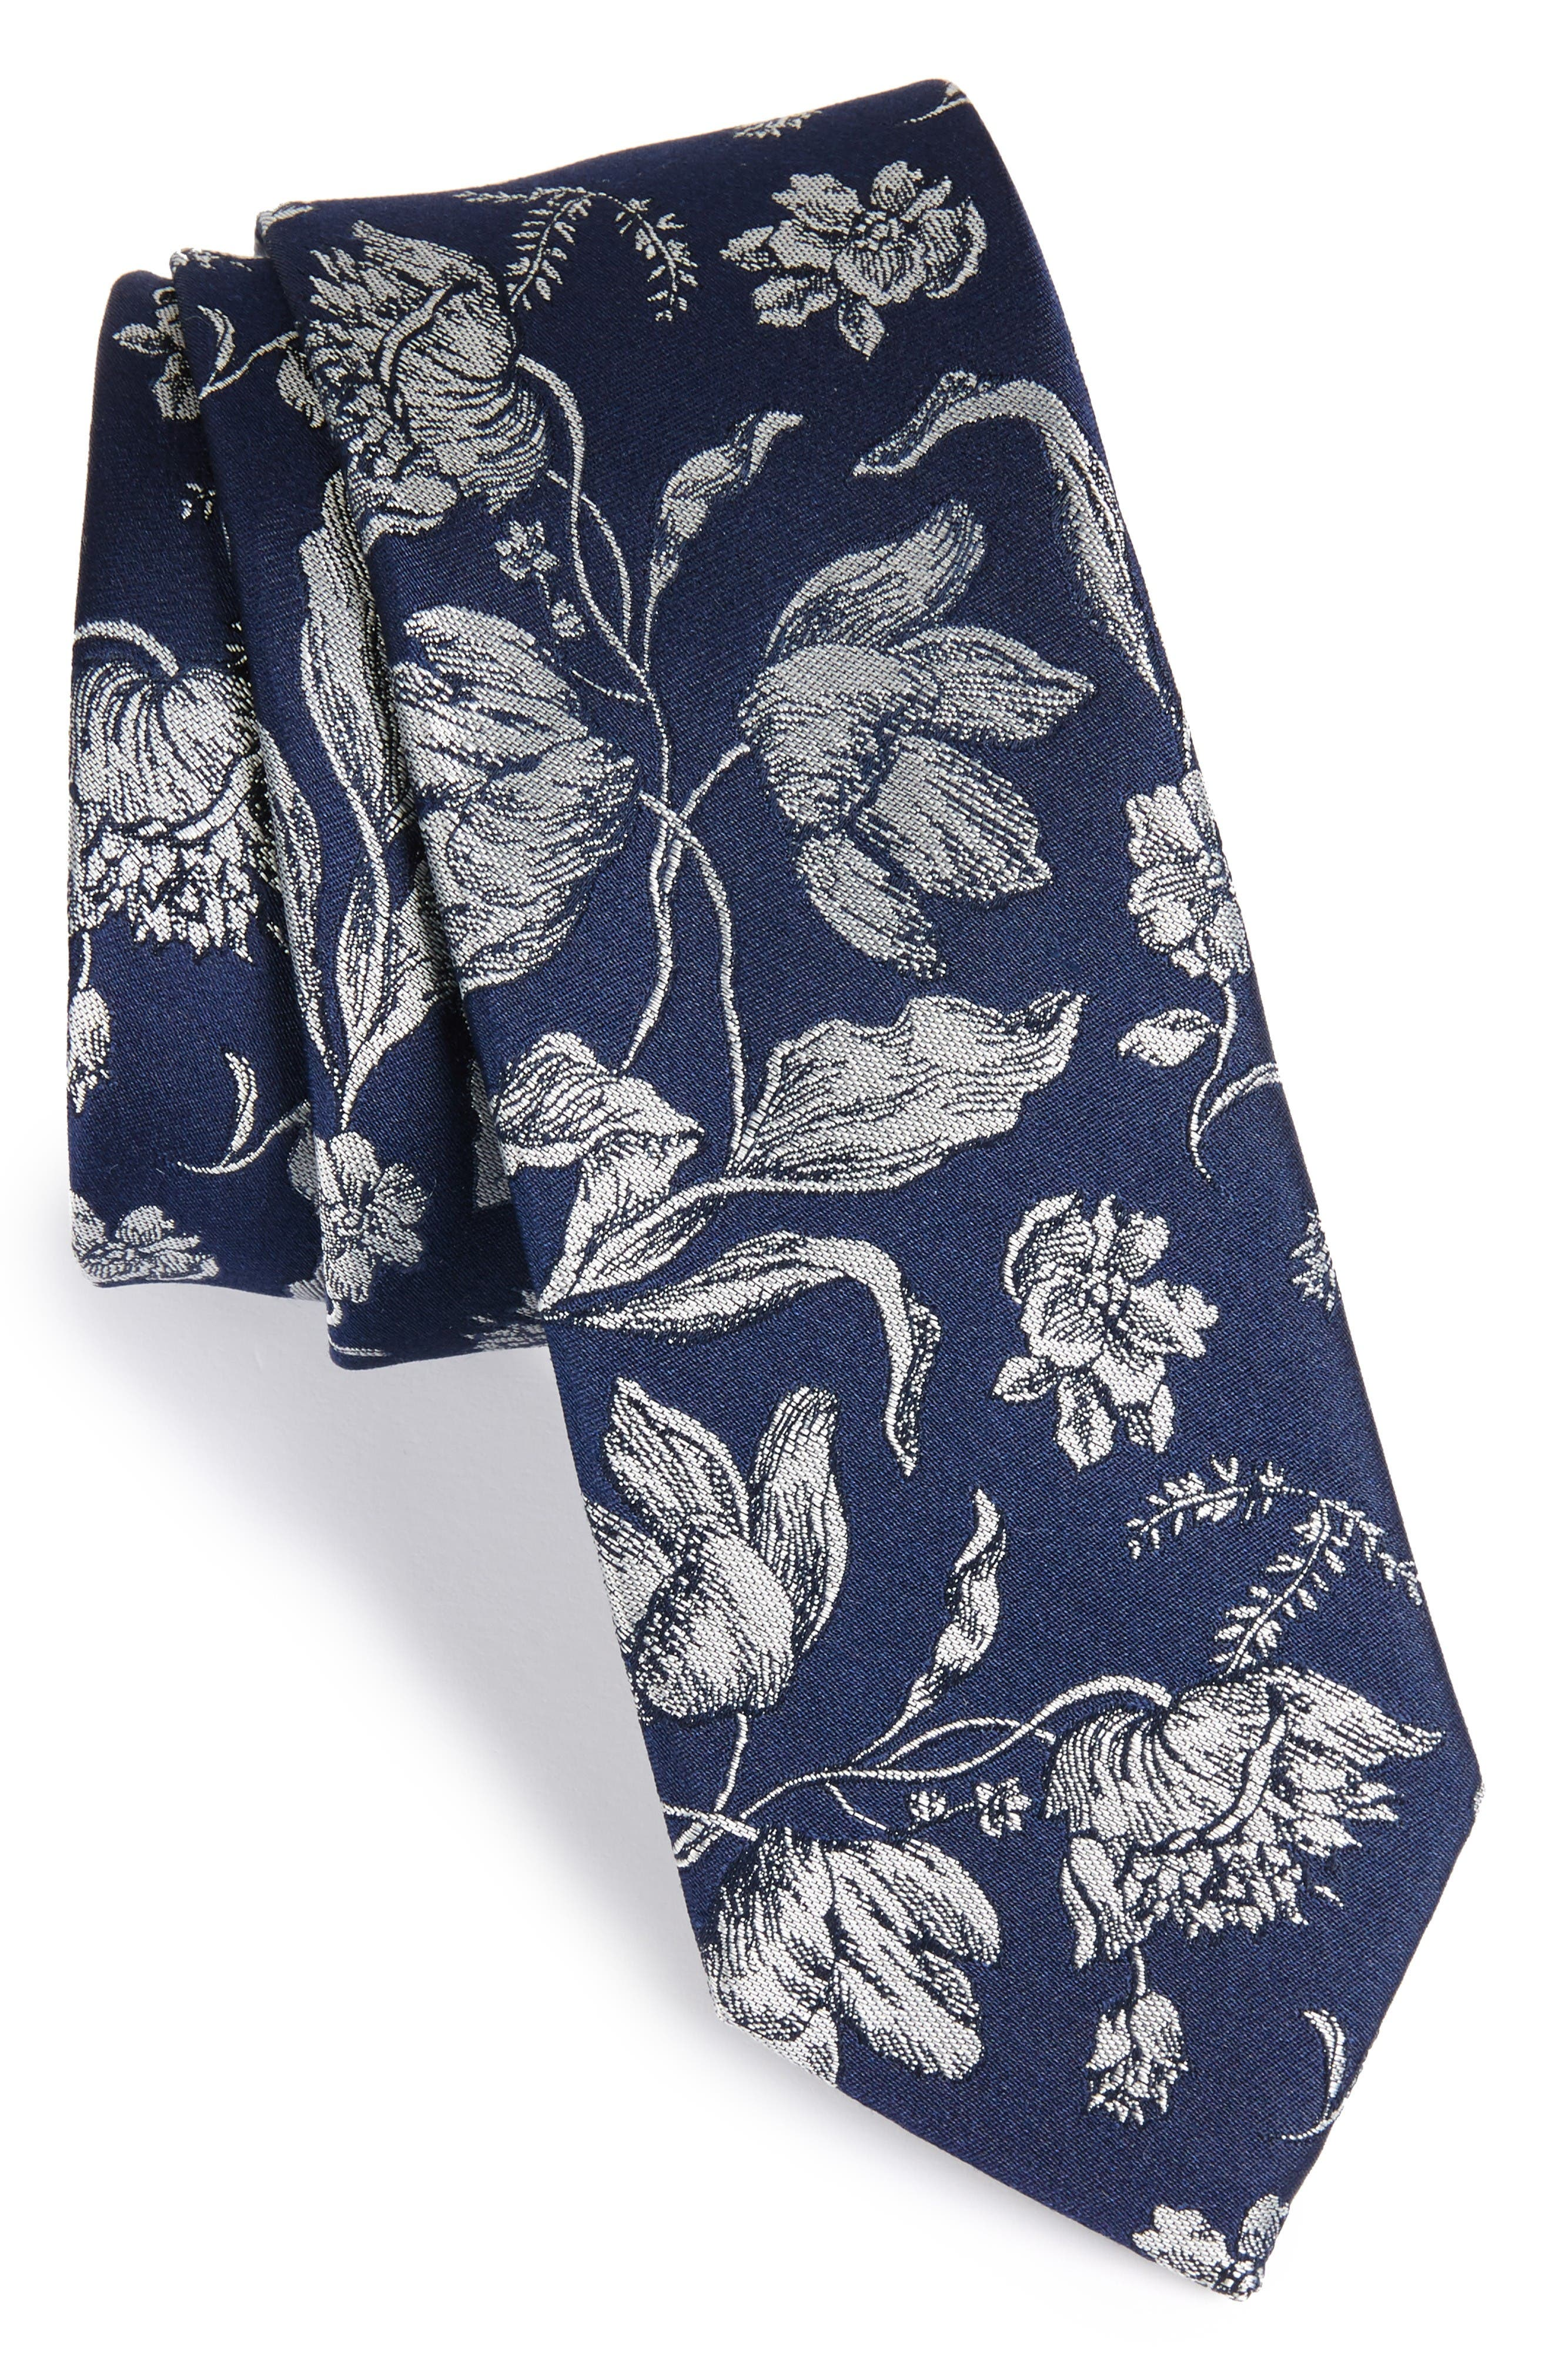 Alternate Image 1 Selected - The Tie Bar Floral Swell Silk Skinny Tie